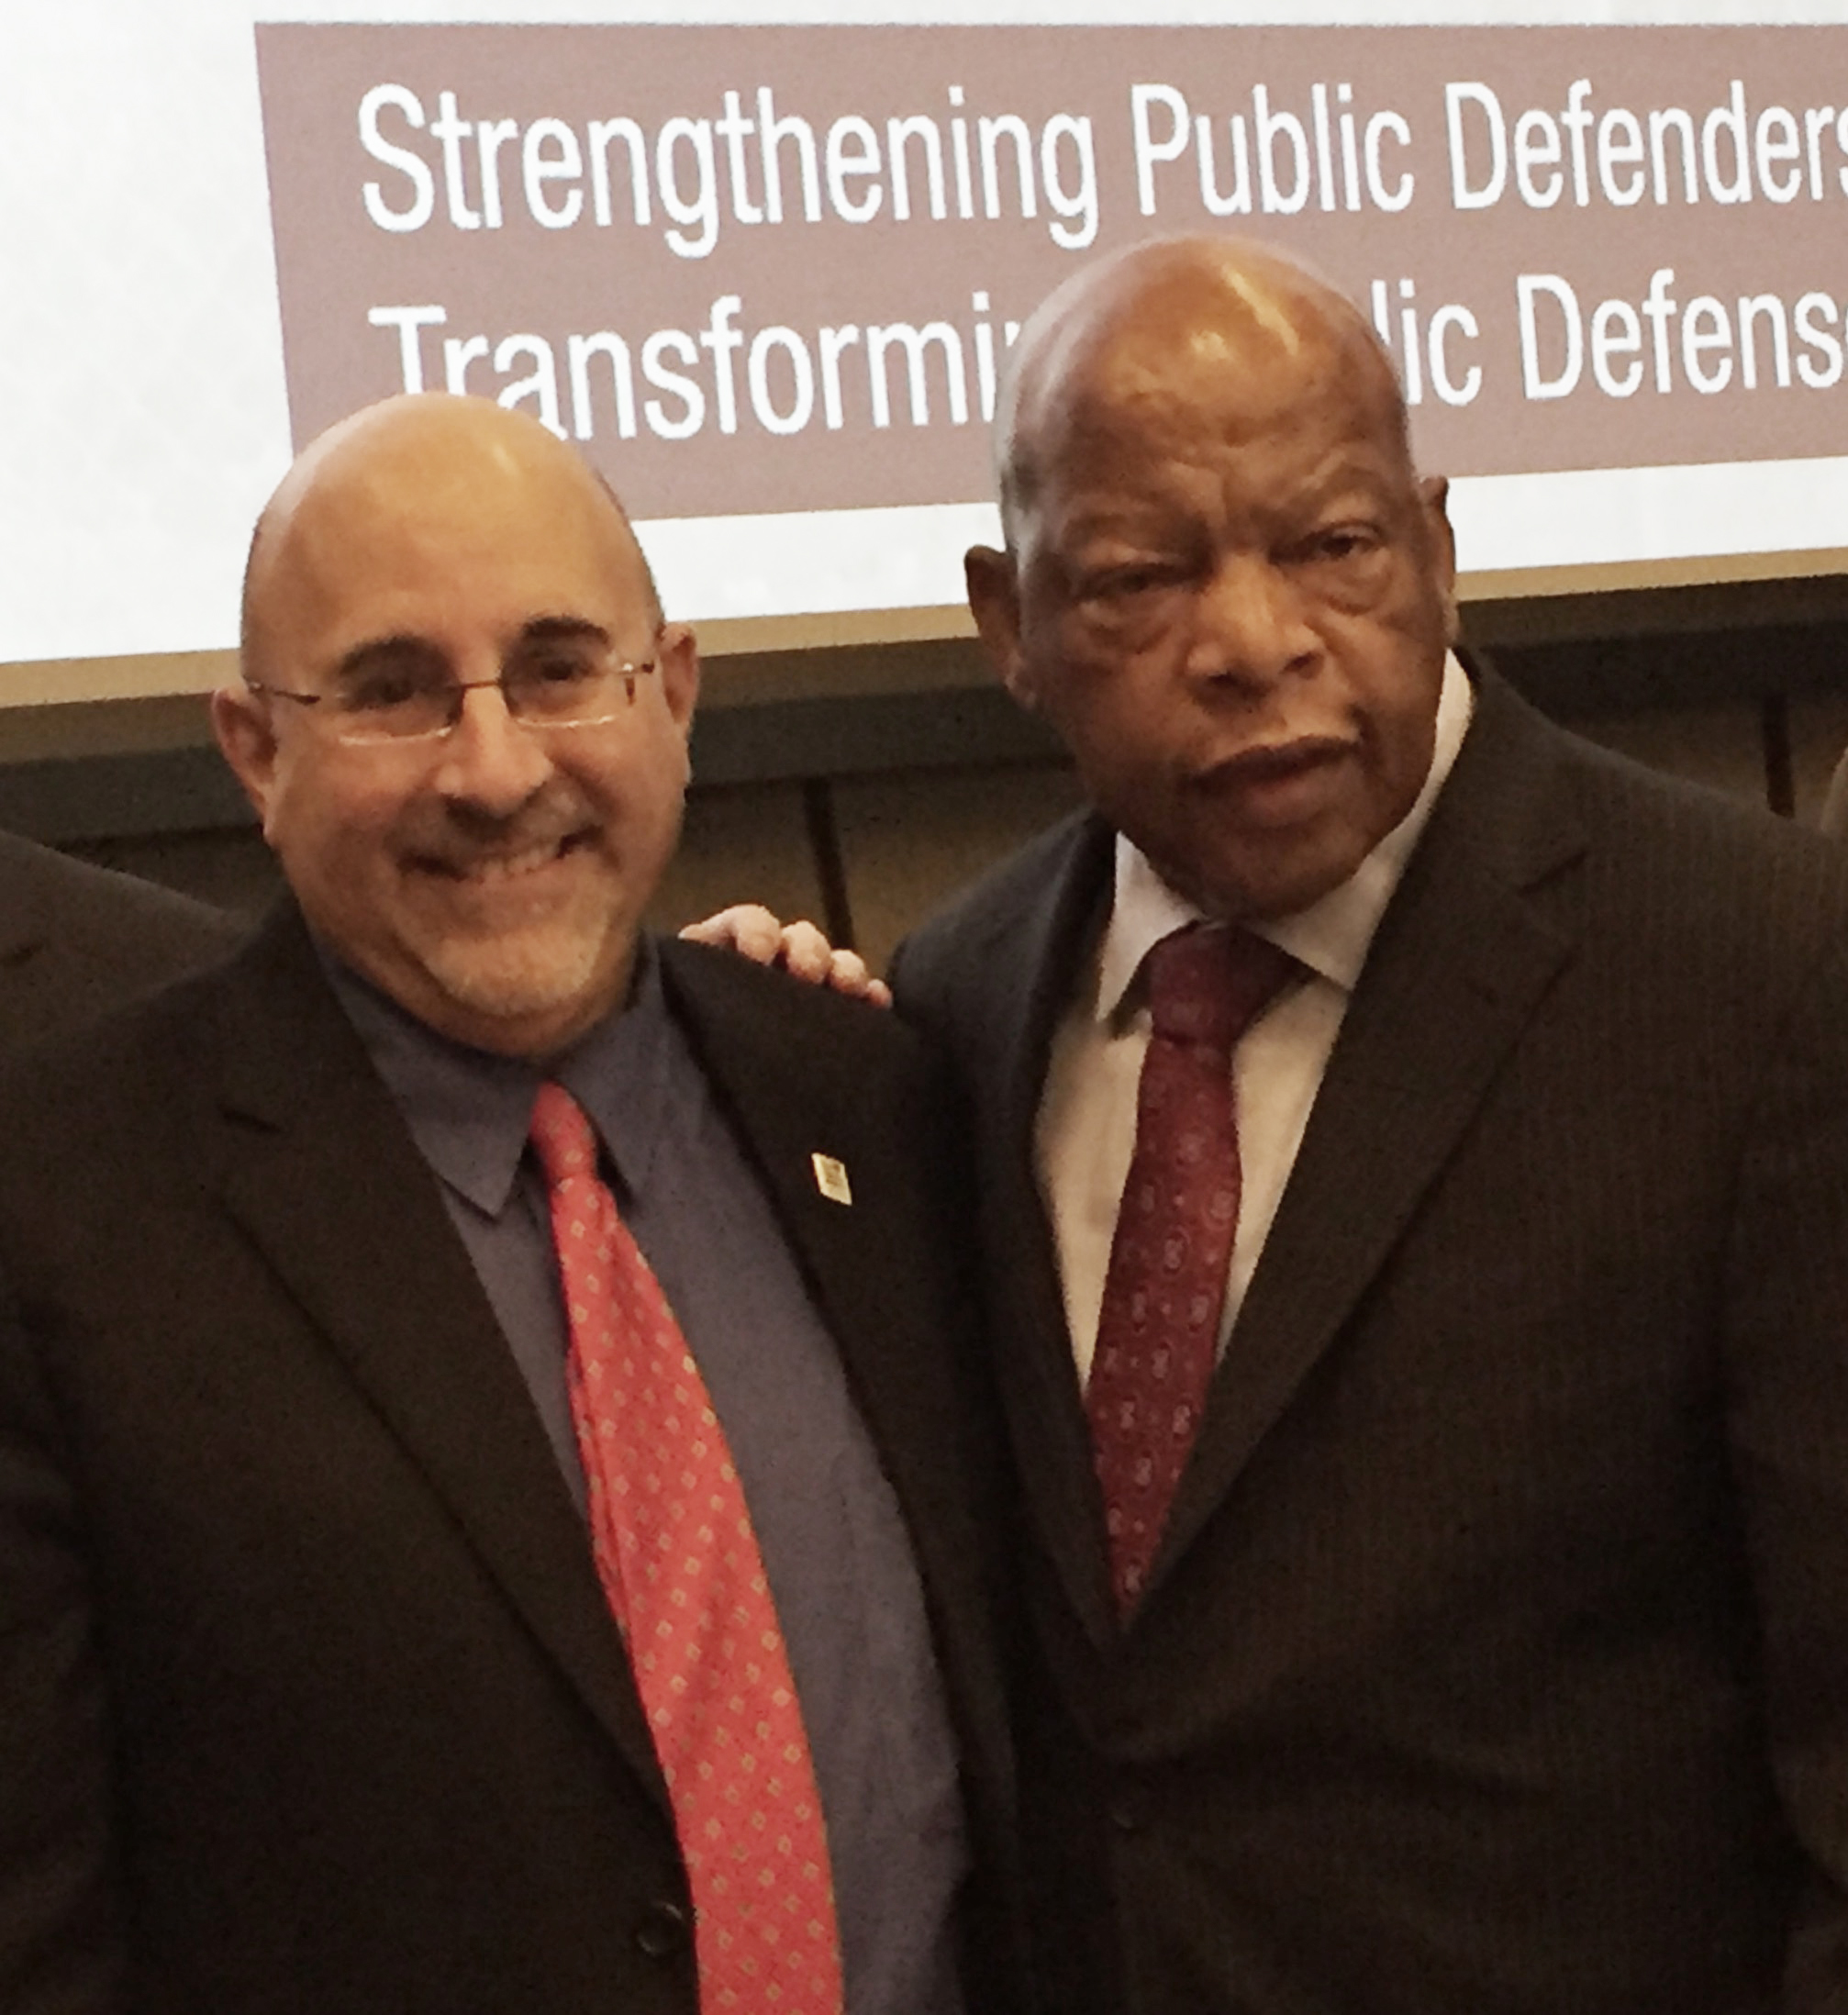 Congressman John Lewis and Evan Wolfson